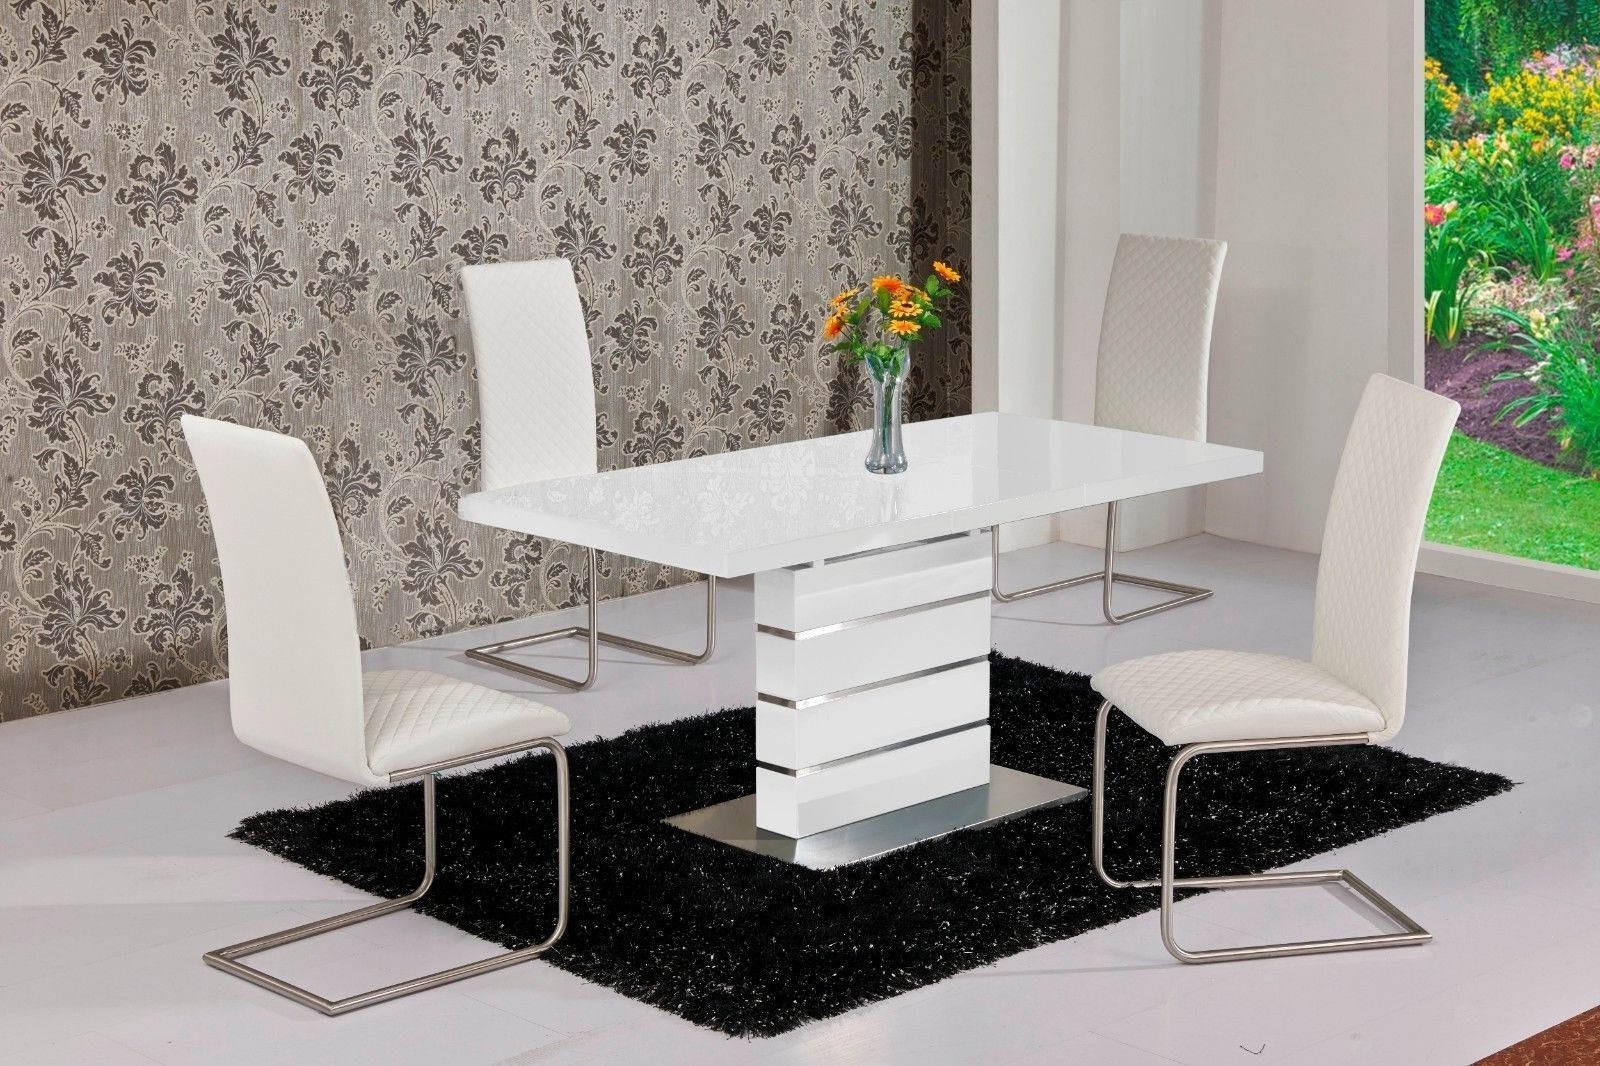 Mace High Gloss Extending 120 160 Dining Table & Chair Set – White Intended For Most Up To Date Extending Dining Room Tables And Chairs (View 4 of 25)